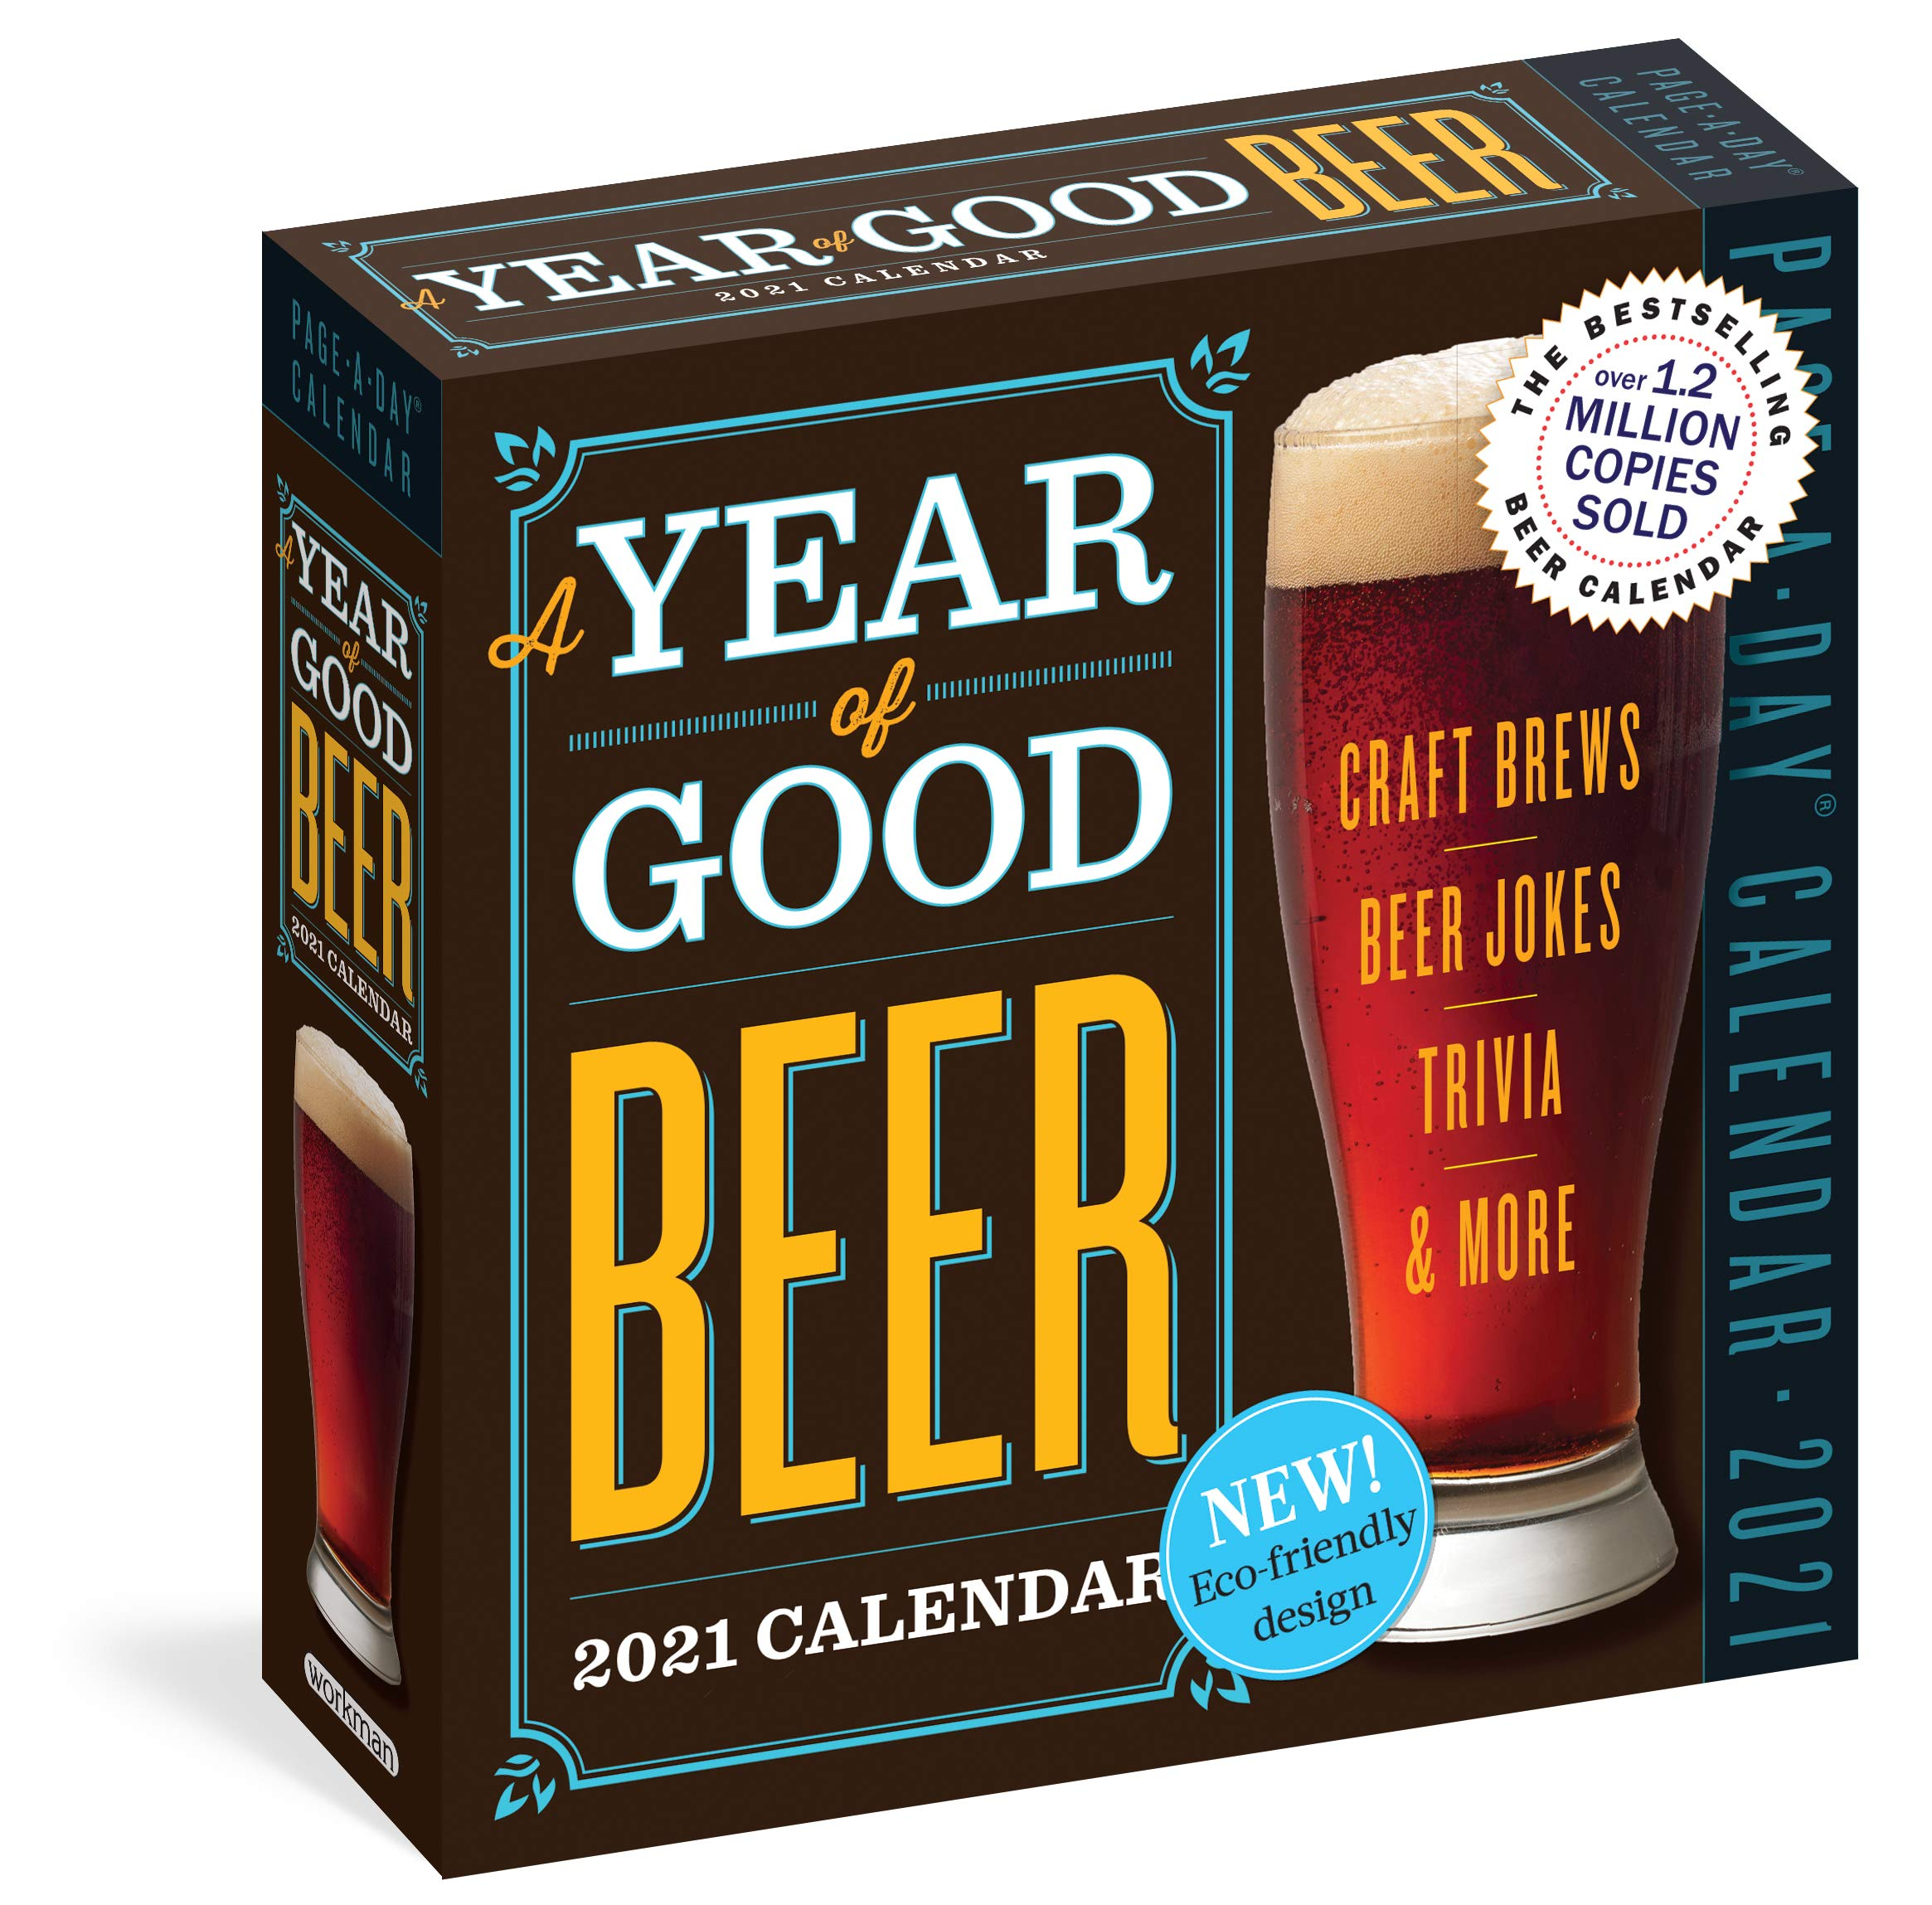 Year Of Good Beer Page A Day Calendar 2021 Turczyn Amahl Workman Publishing 9781523508792 Books